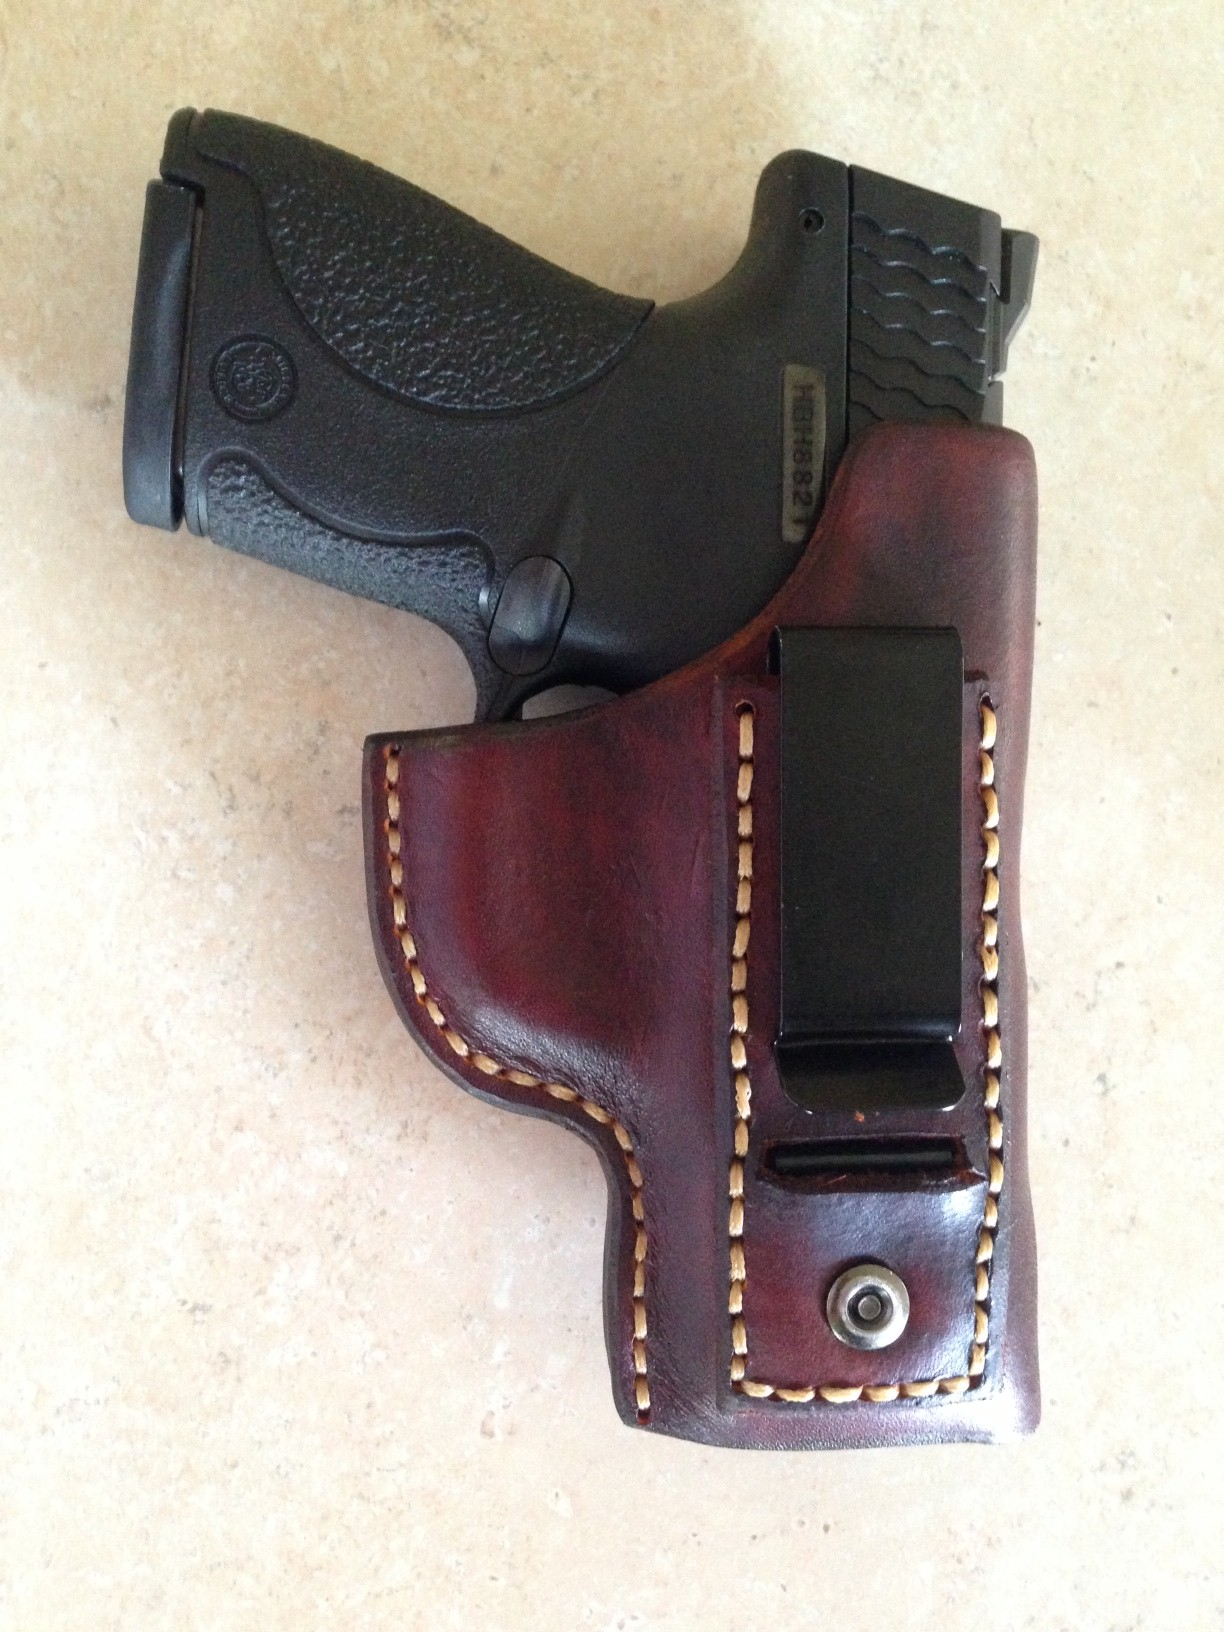 Little brother (Shield 9mm) came home to live with me!-shield-holster.jpg